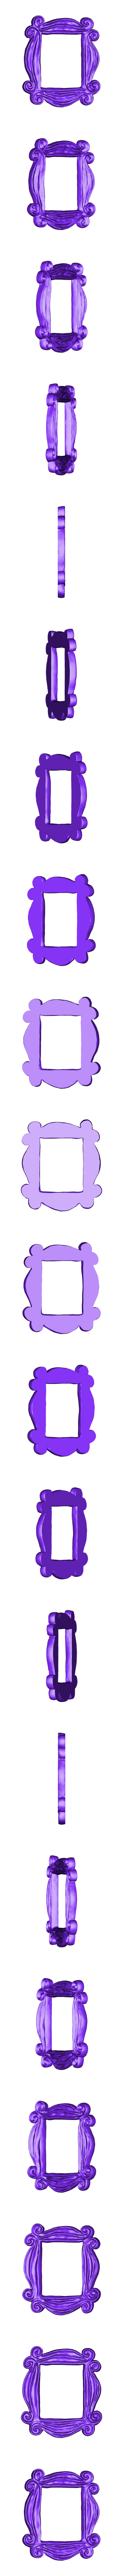 Frame_Lower_poly.stl Download STL file FRIENDS - Peephole Frame • 3D printable template, Joaco3D